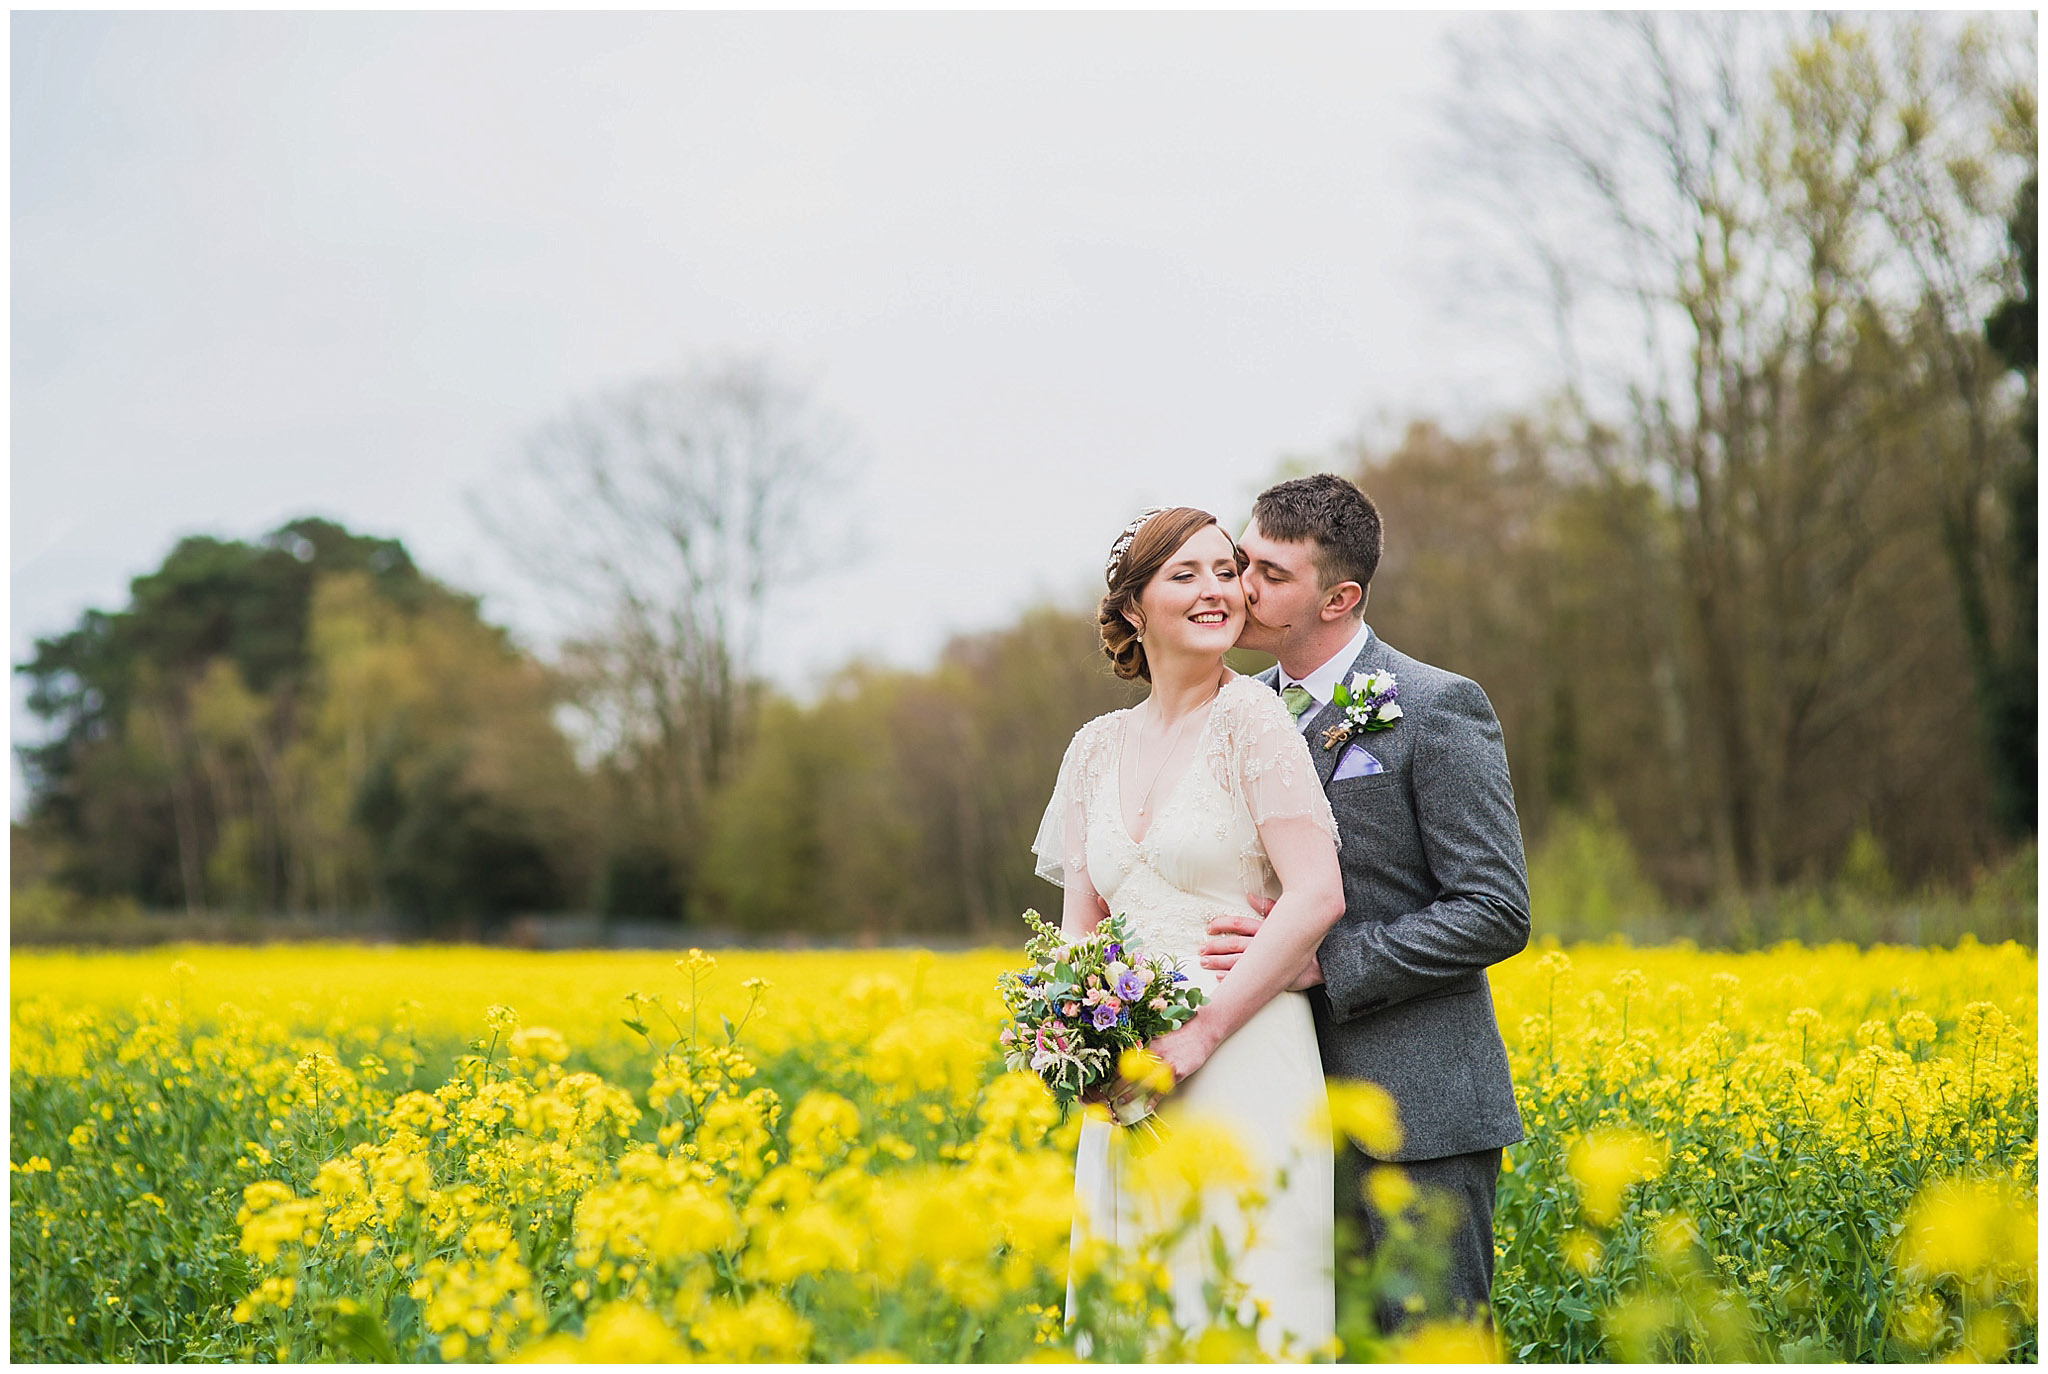 Sarah-&-Dan-The-Old-Vicarage-Wedding-Venue-Dorset-Photographer-30